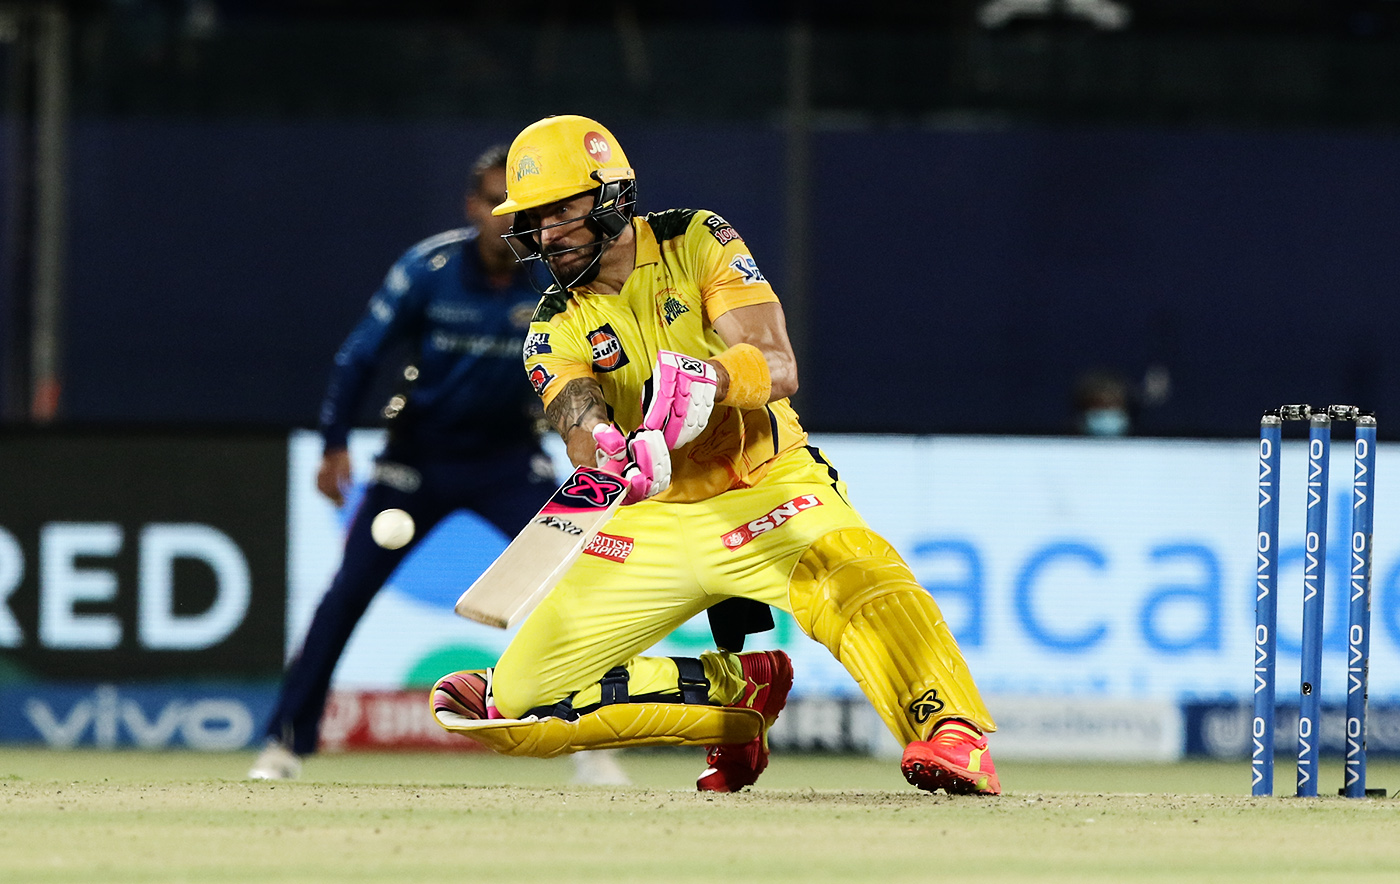 All change: Faf du Plessis has seen the language of batting transform since the beginning of T20s